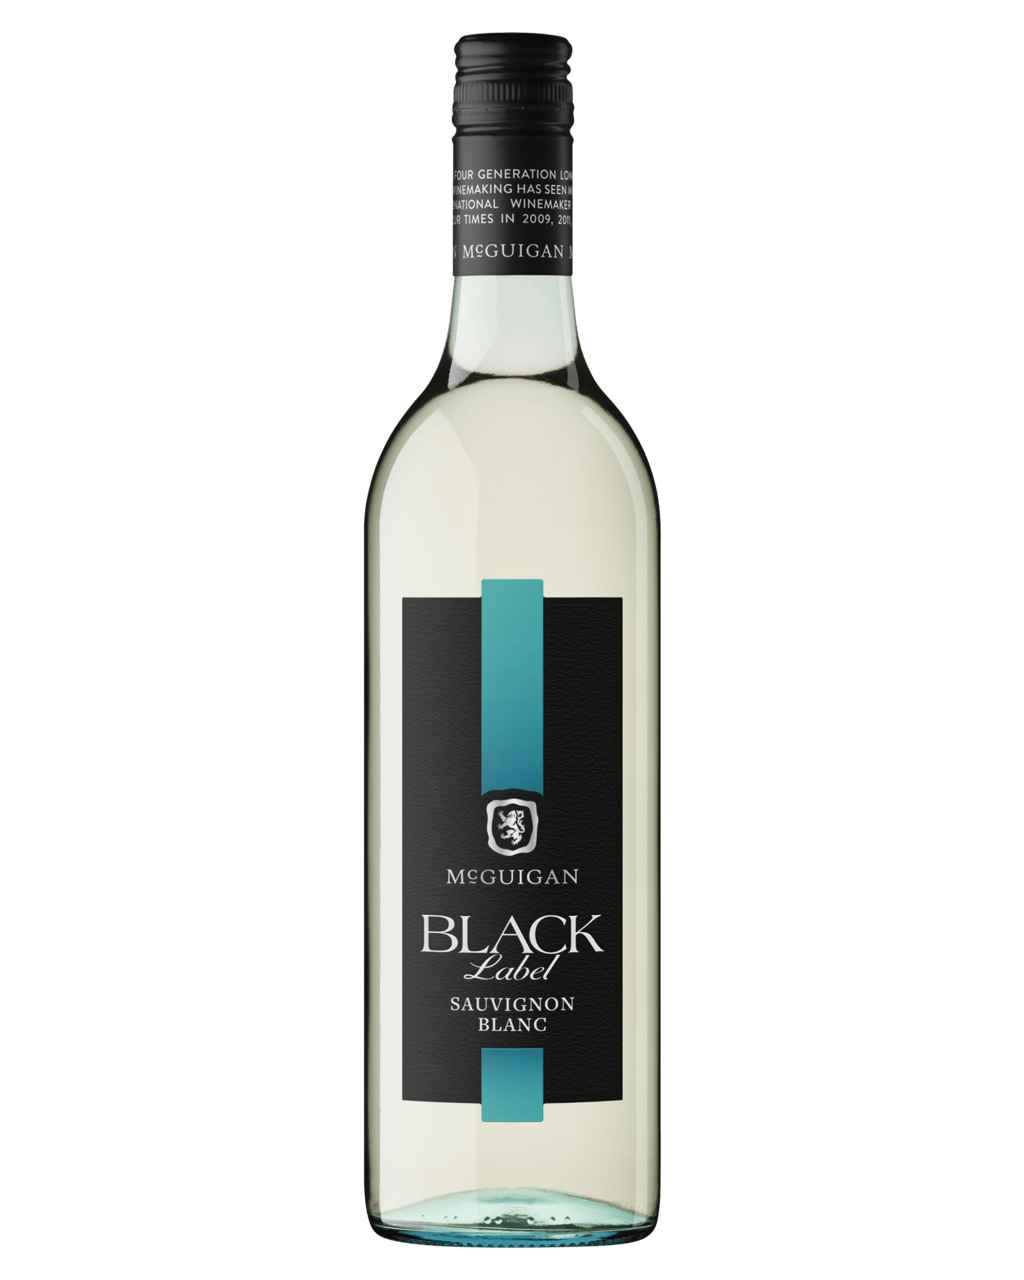 Buy Mcguigan Black Label Sauvignon Blanc Dan Murphy S Delivers Niall mc guigan is a musician and music therapist from castleblayney, co. mcguigan